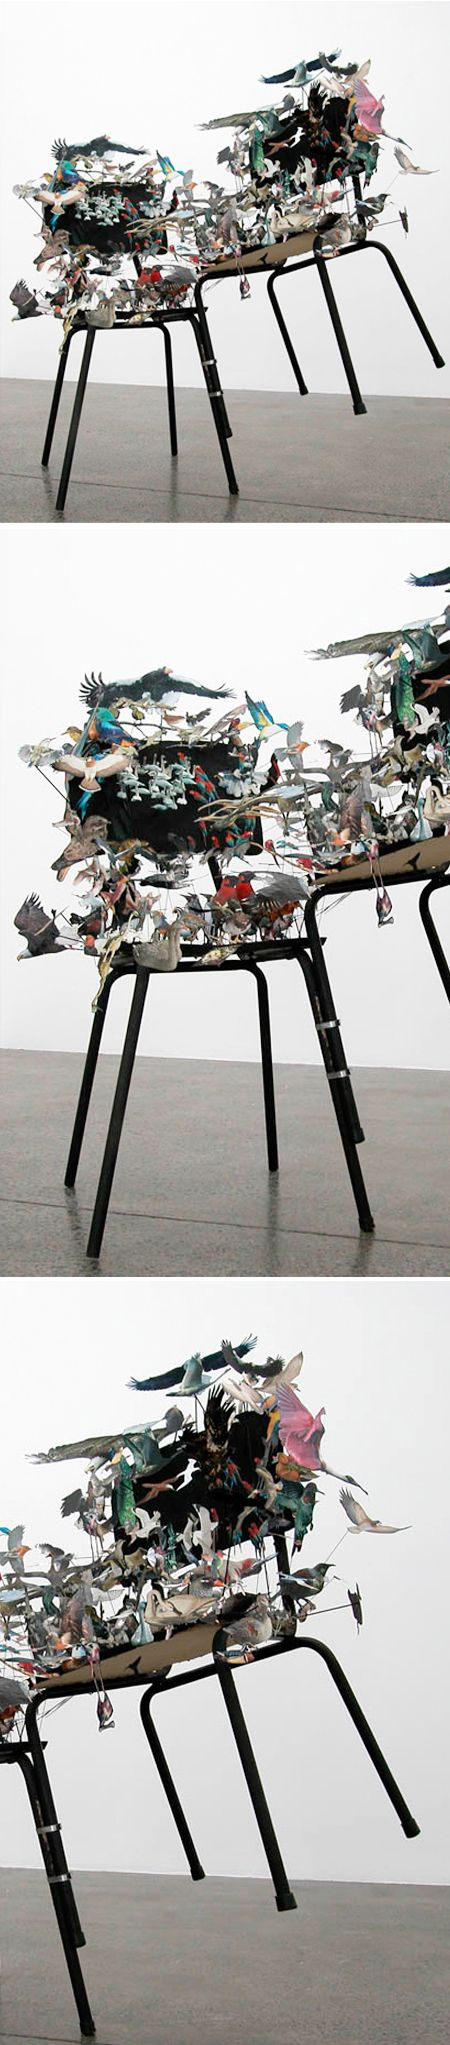 collage, sculpture, awesome. peter madden.